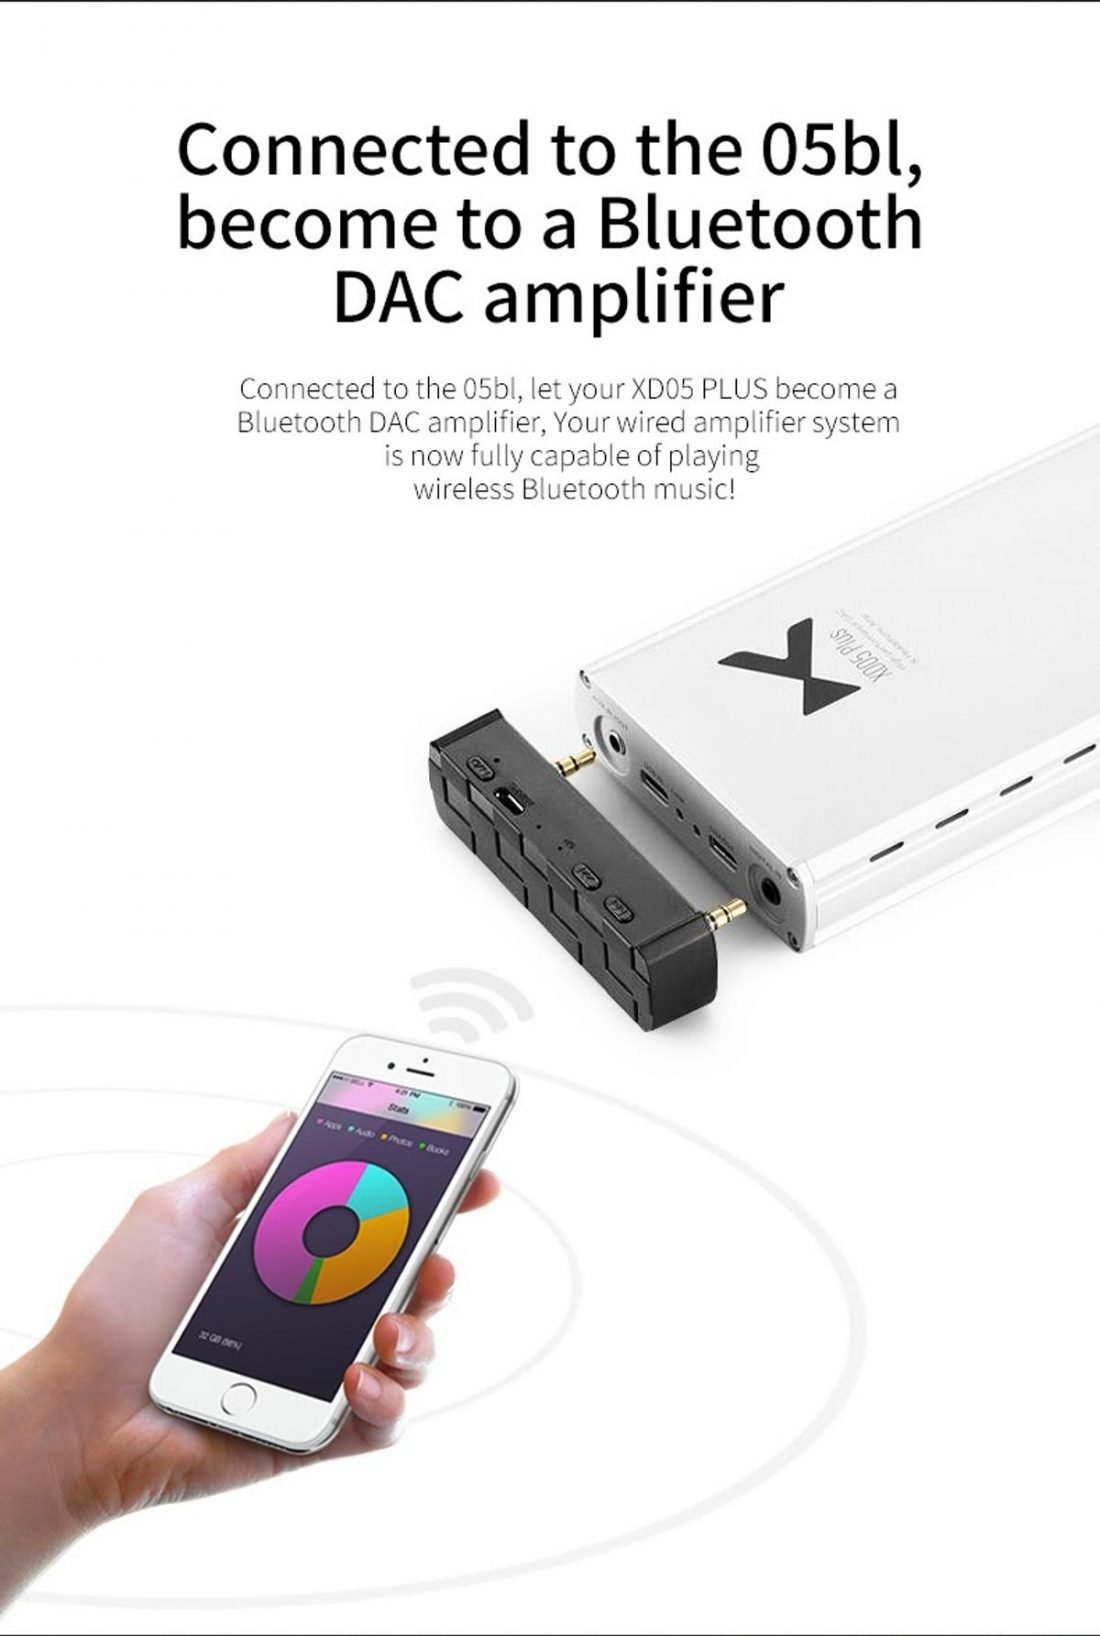 The Bluetooth add-on modules are unfortunately not color matched for the XD05 Pro. (From en.xduoo.com)